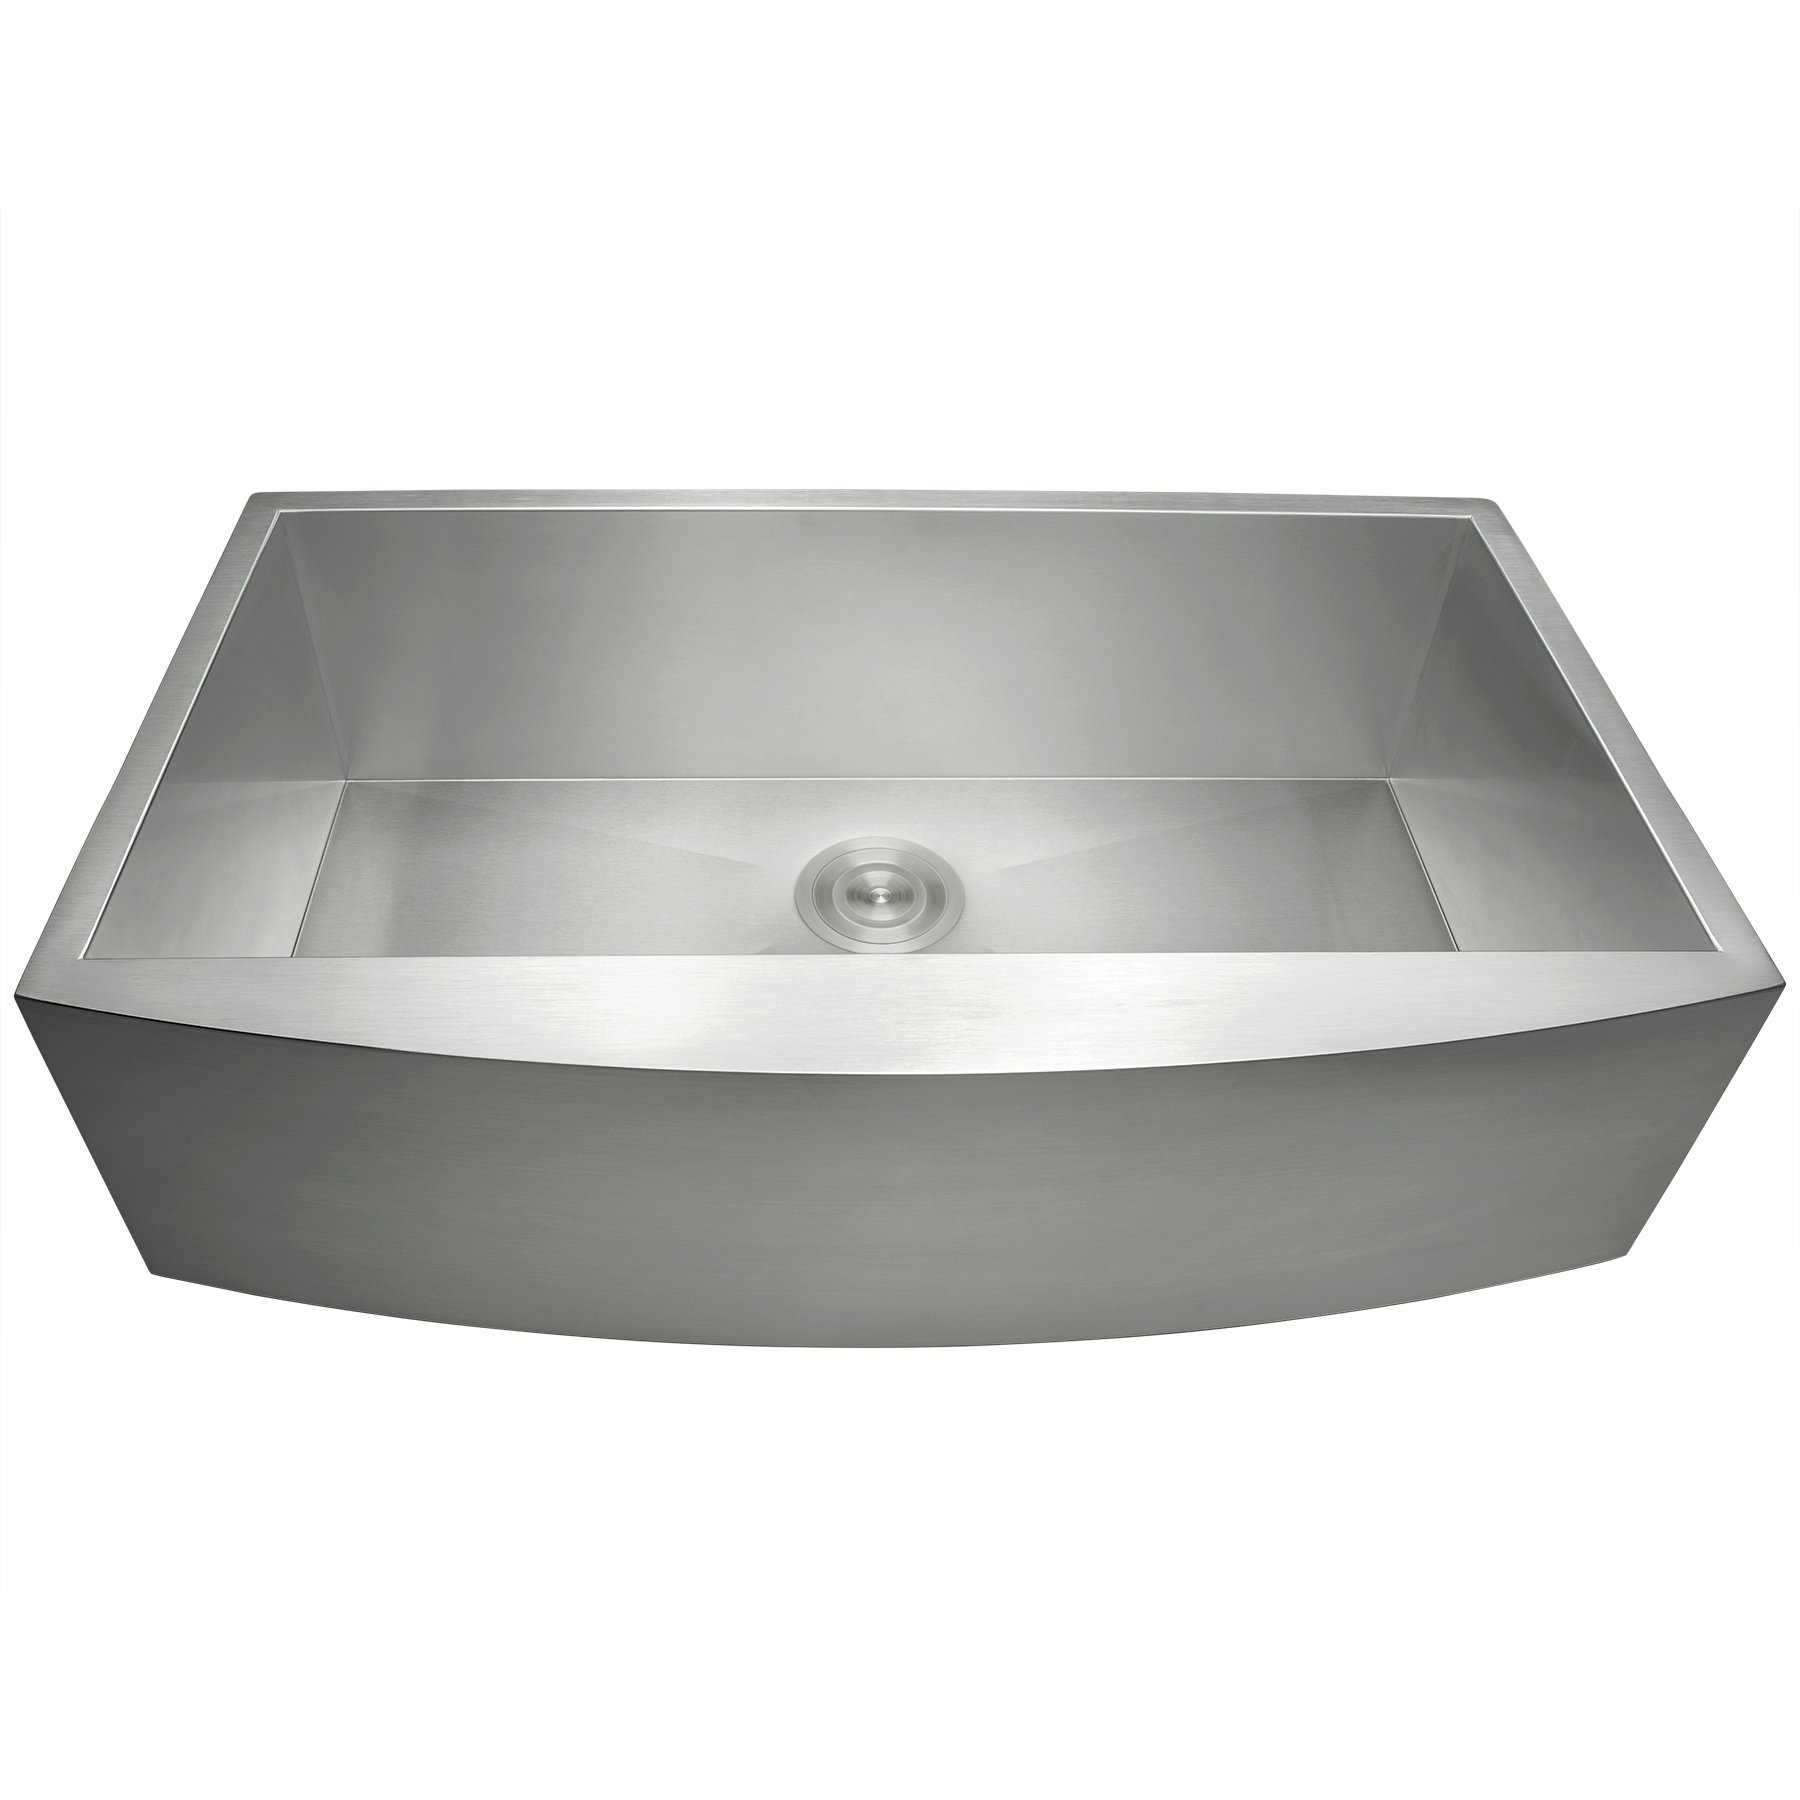 Perfetto Kitchen and Bath 33'' x 22'' x 9'' Apron Undermount Handmade 18 Gauge Stainless Steel Single Basin Kitchen Sink w/ Dish Grid & Drain Combo by Perfetto Kitchen and Bath (Image #3)